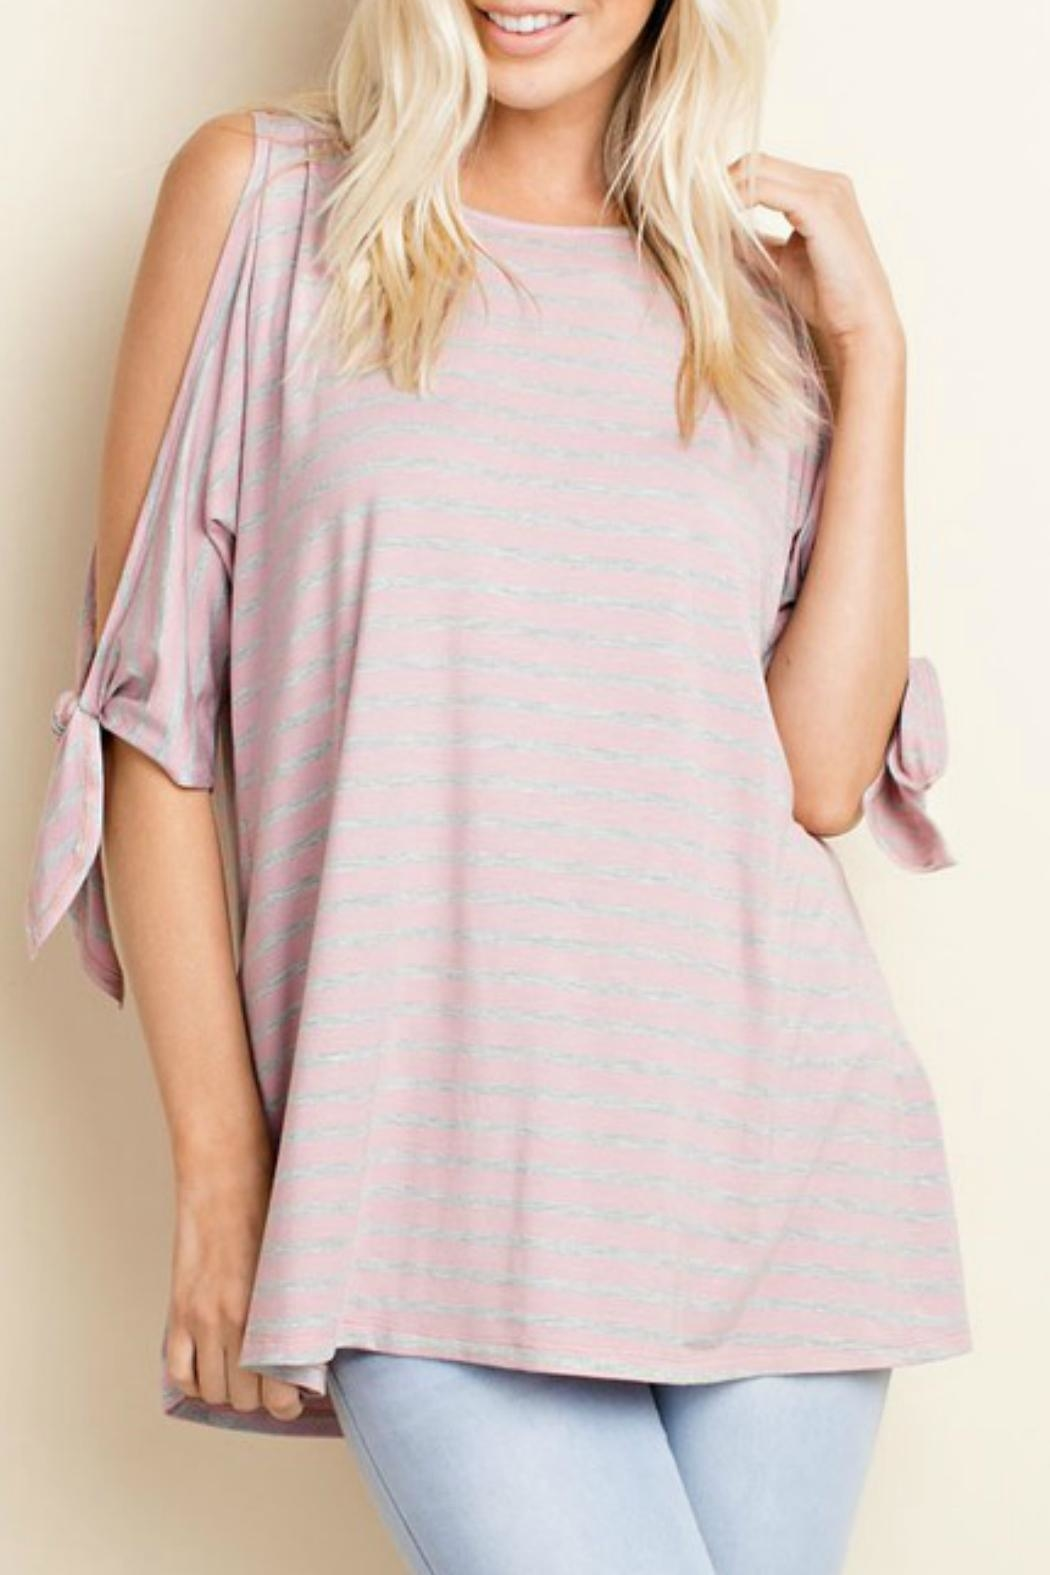 143 Story Open Slit Tunic Top - Front Cropped Image